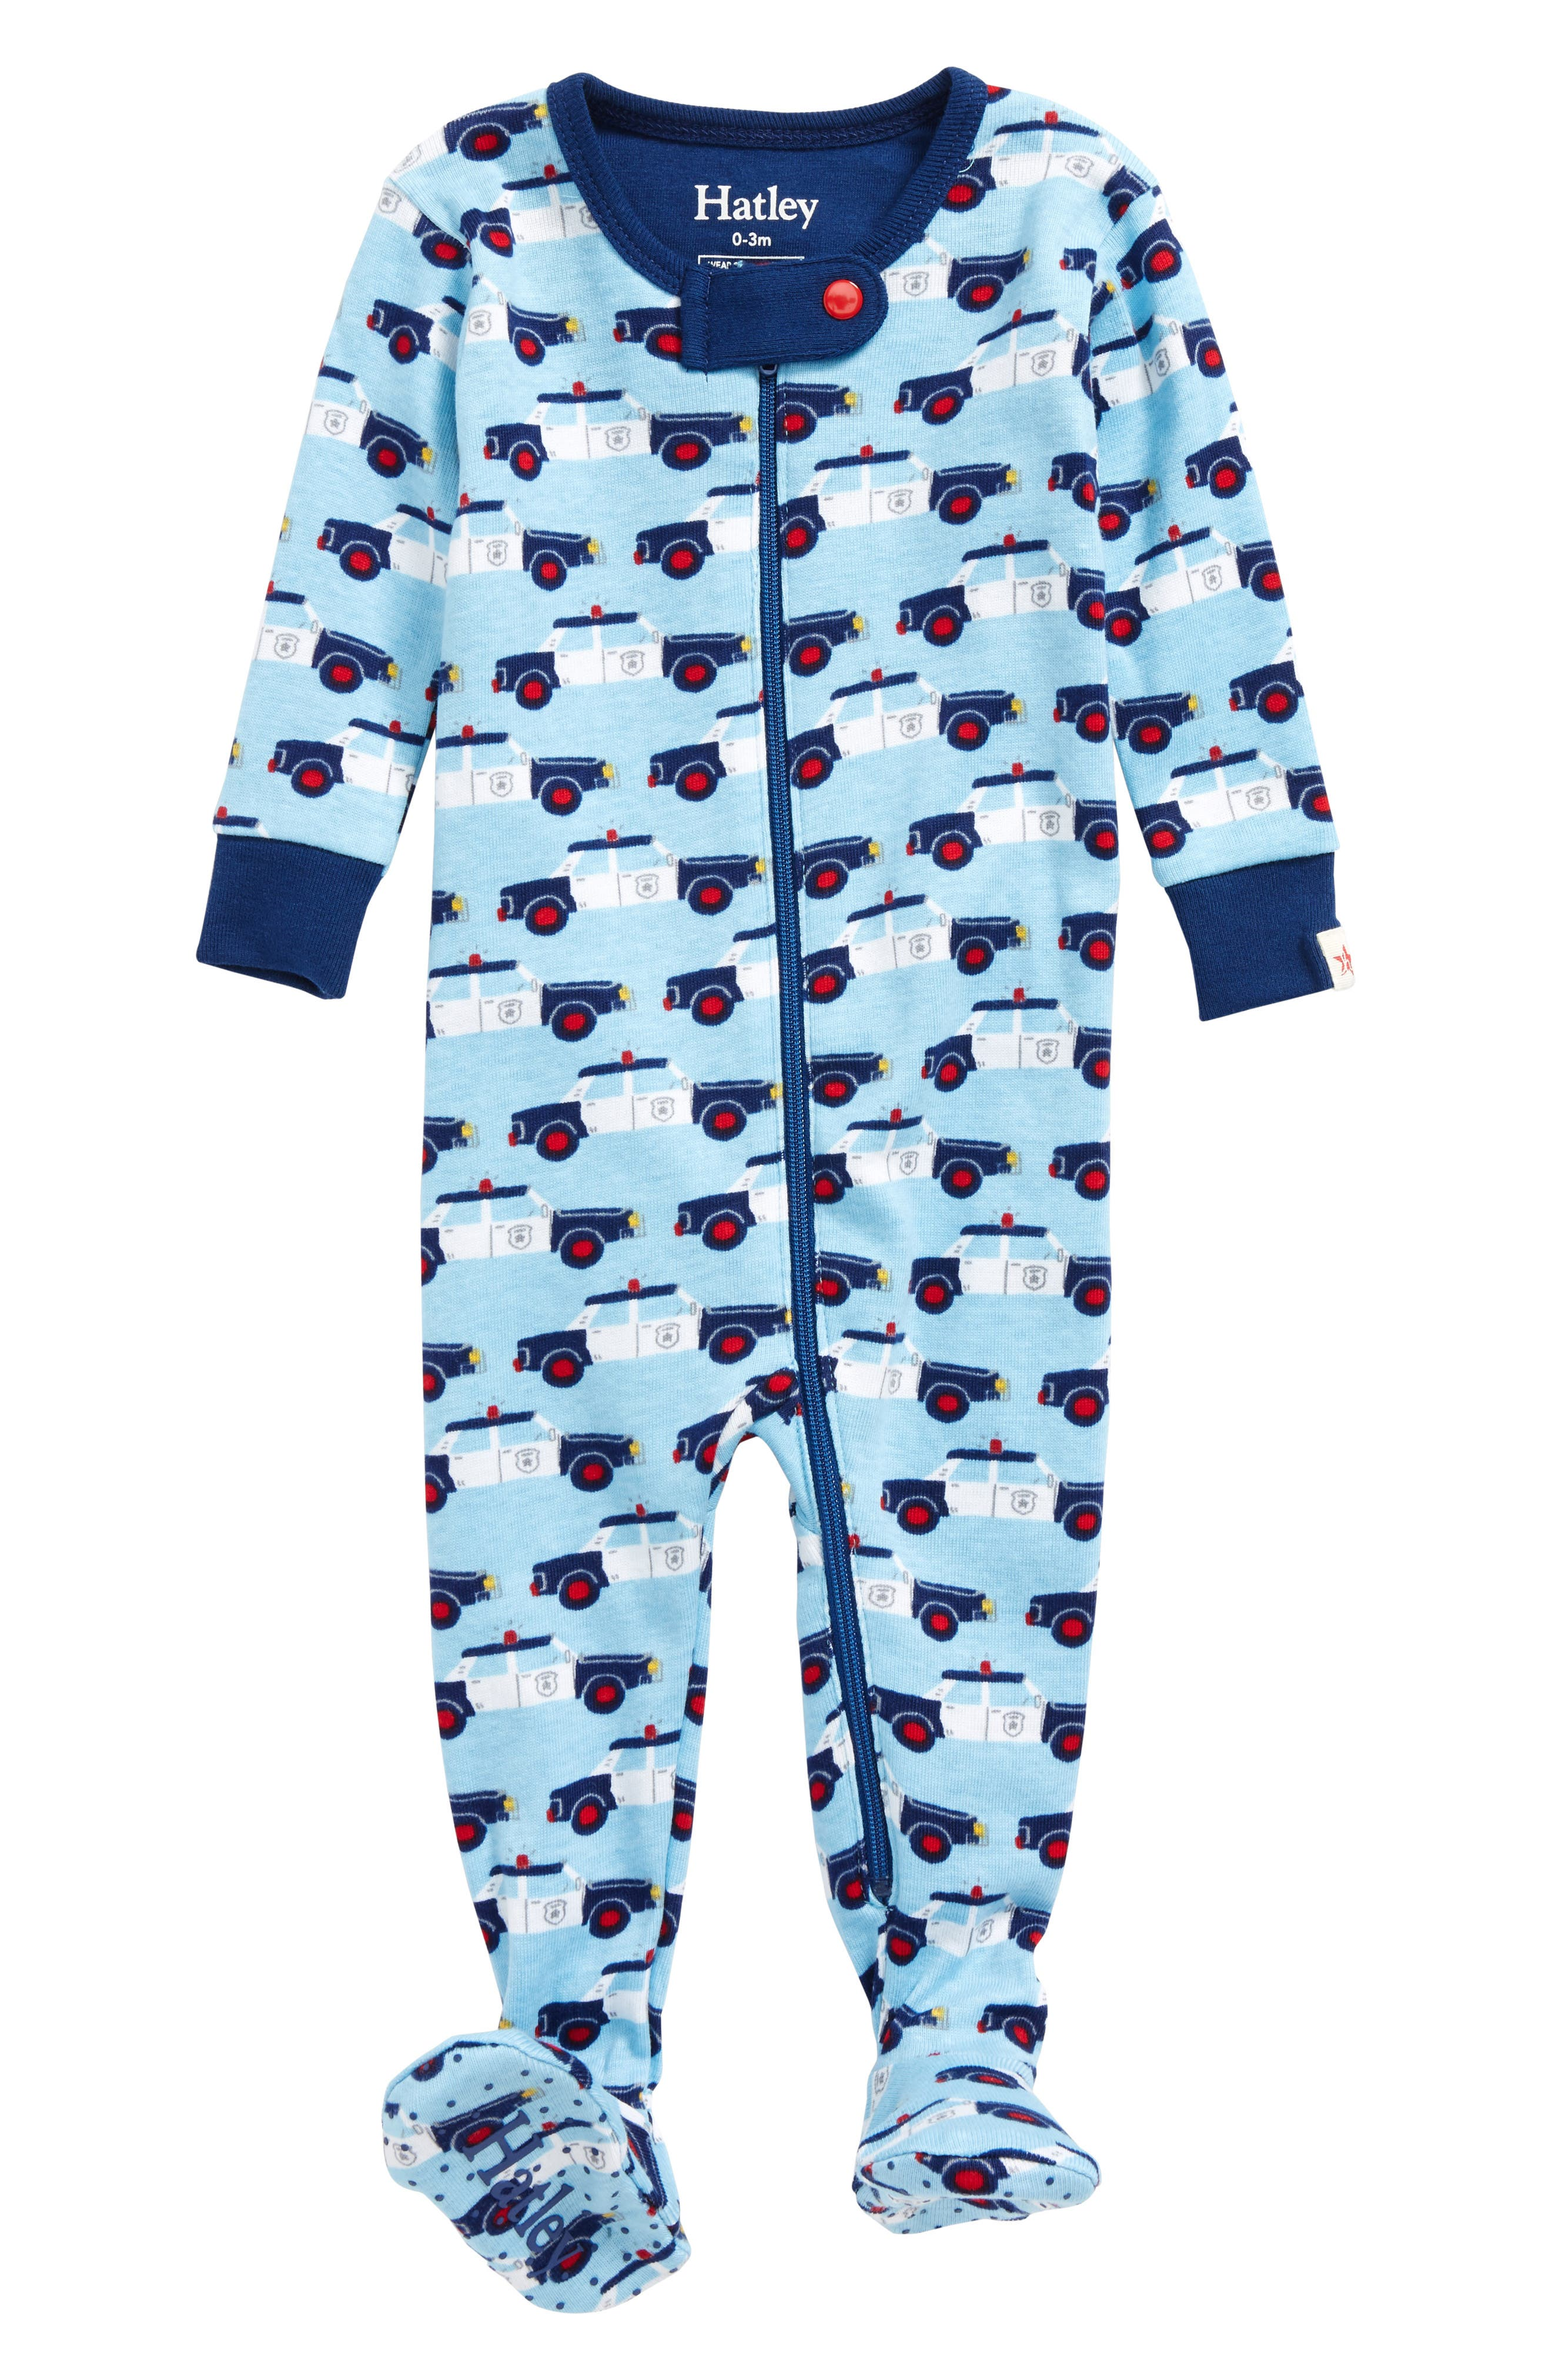 Cop Cars Organic Cotton Fitted One-Piece Pajamas,                         Main,                         color, Cop Cars